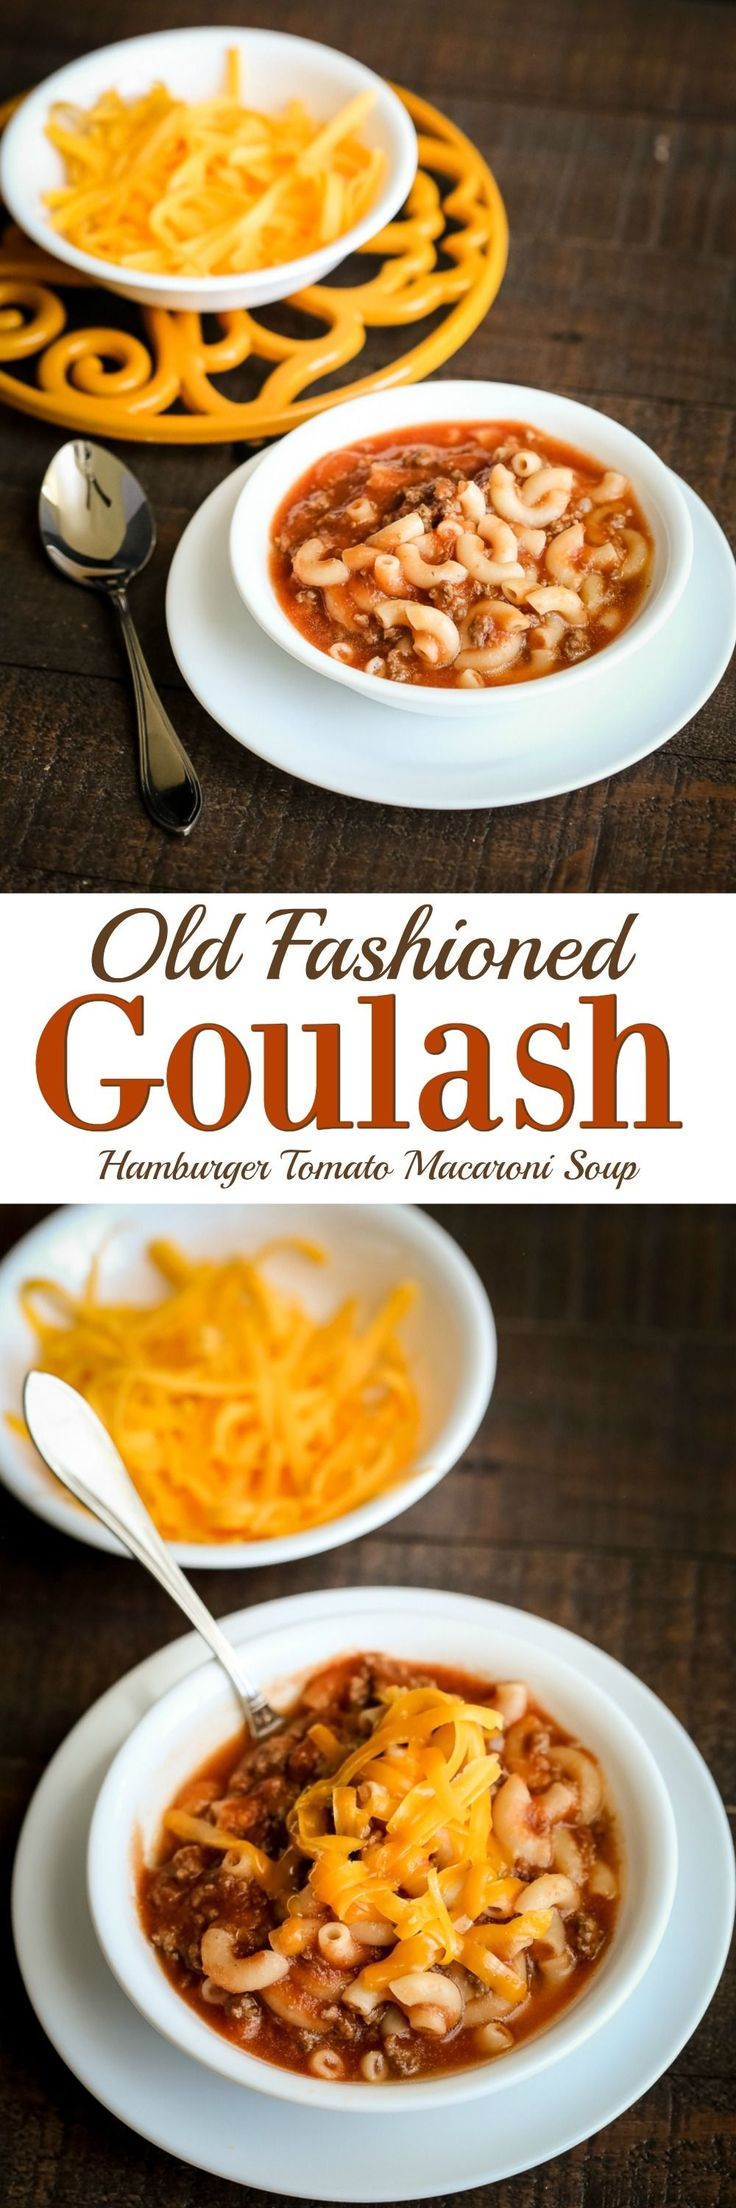 This Old Fashioned Goulash soup recipe is one that everyone loves! A perfect blend of hamburger, noodles, tomato base & spices that entice requests for more via @2creatememories